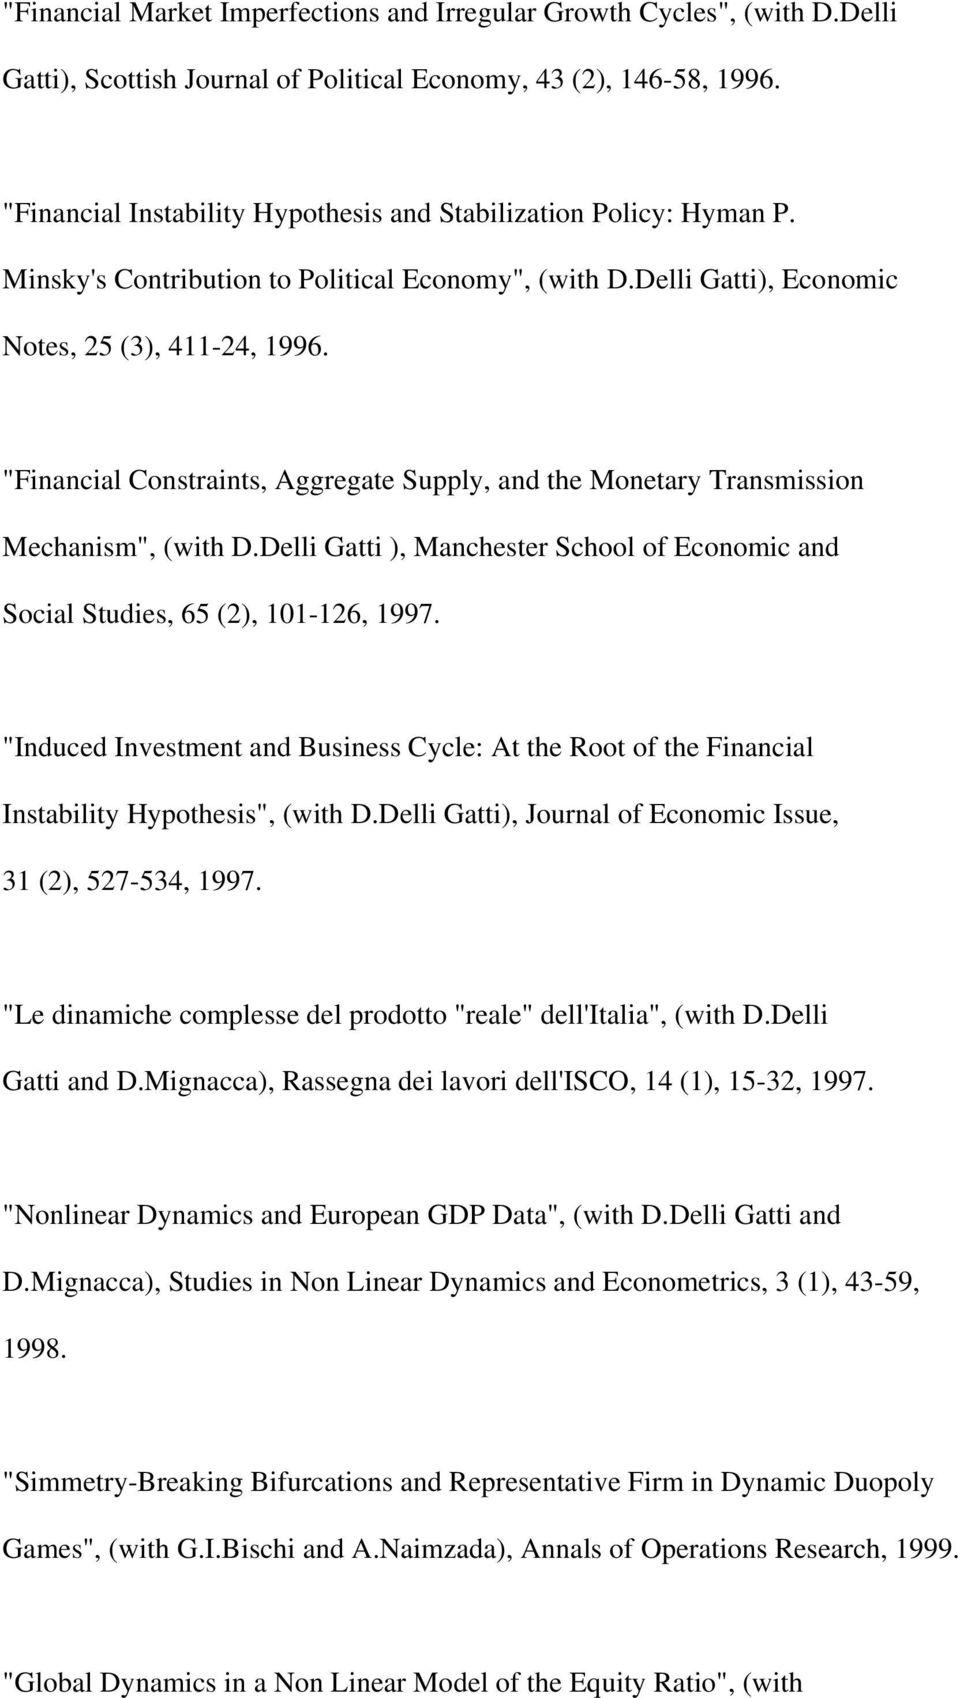 """Financial Constraints, Aggregate Supply, and the Monetary Transmission Mechanism"", (with D.Delli Gatti ), Manchester School of Economic and Social Studies, 65 (2), 101-126, 1997."